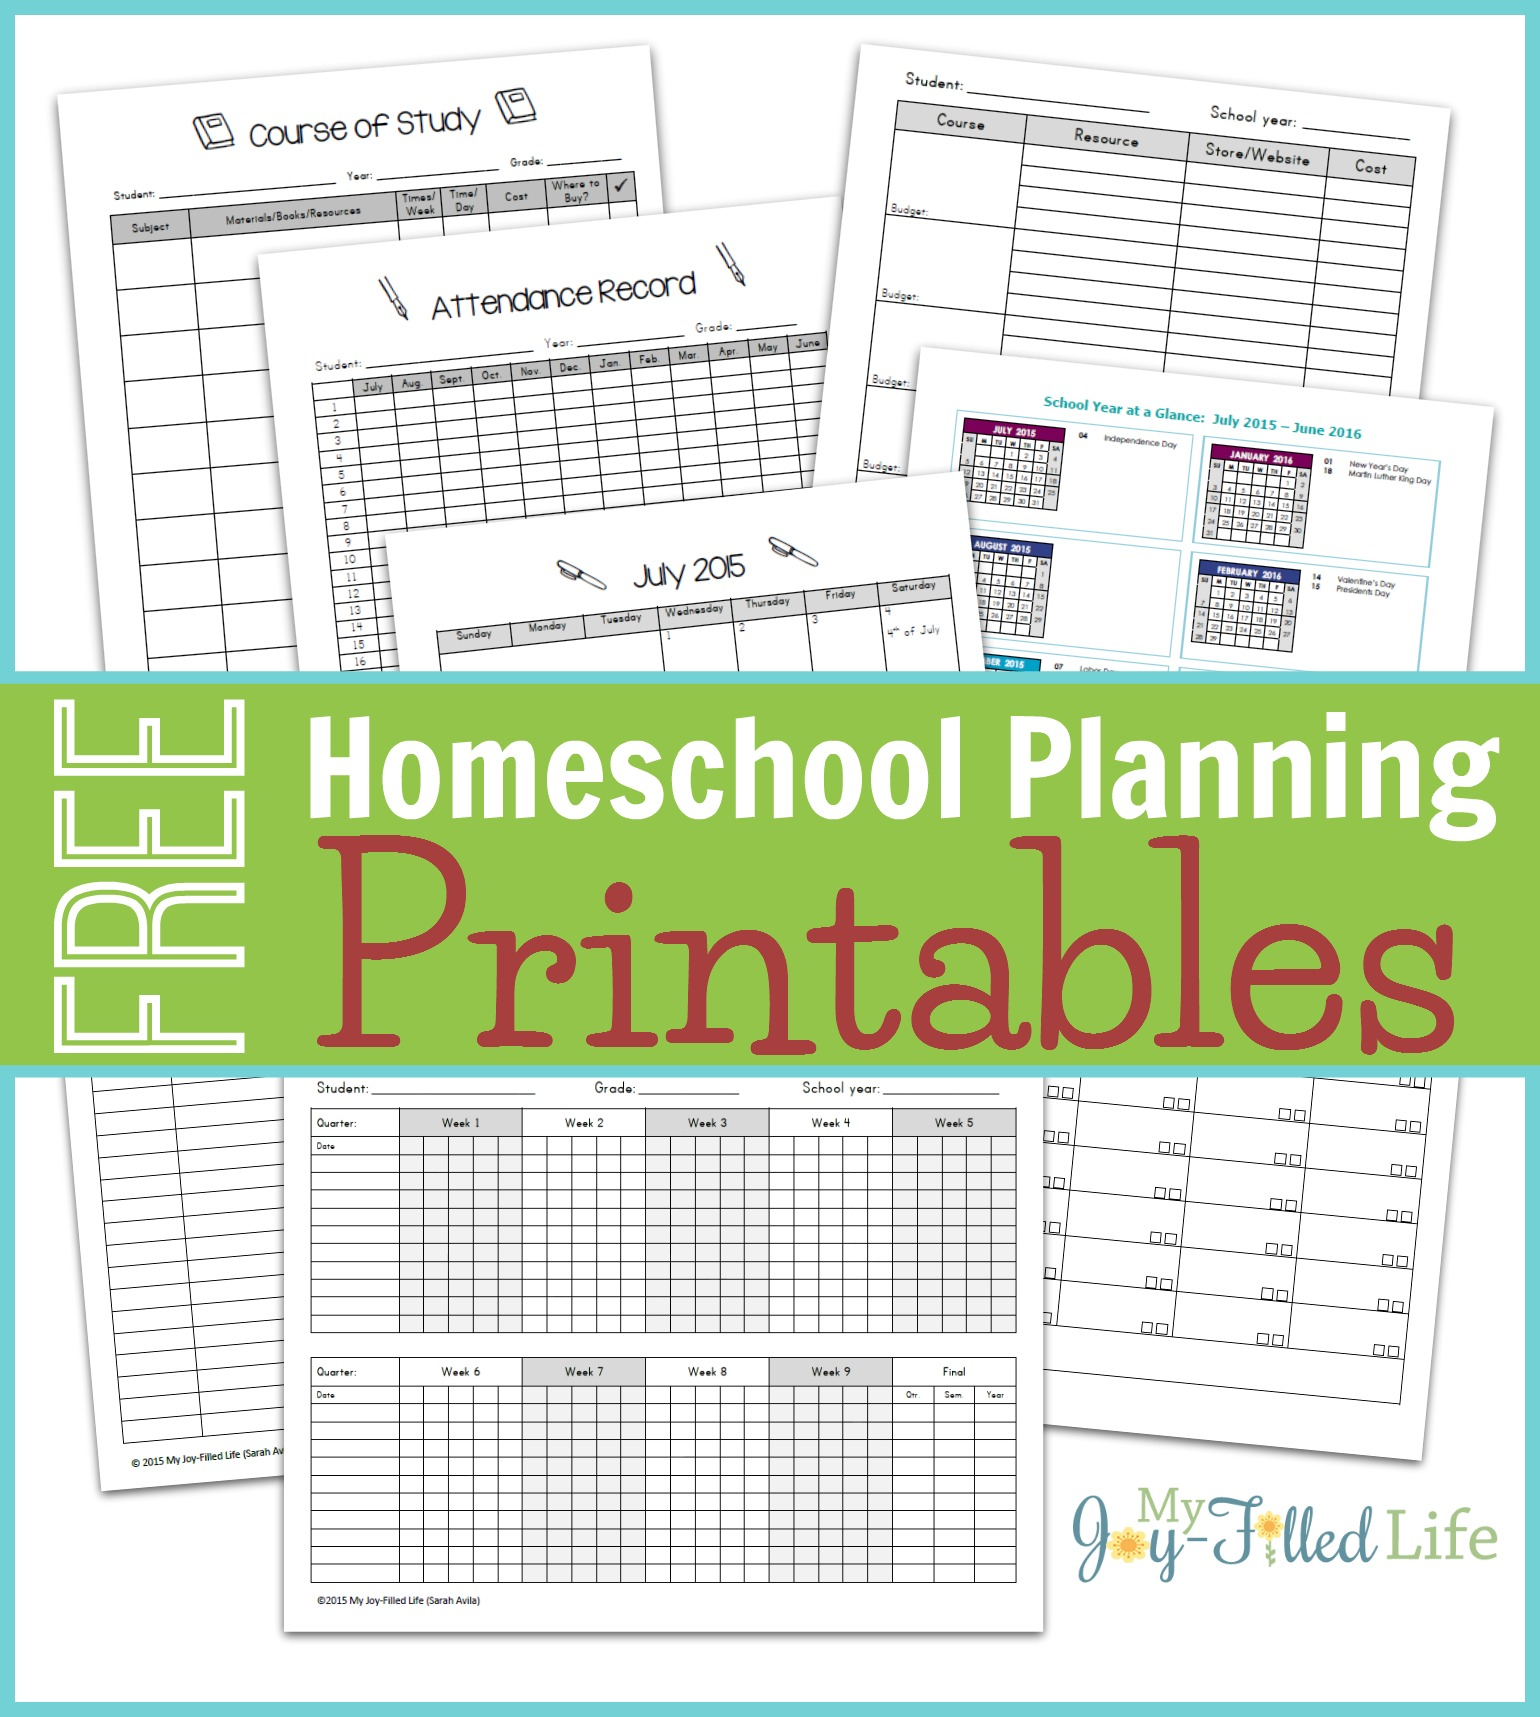 It is a graphic of Playful Printable Homeschool Worksheets